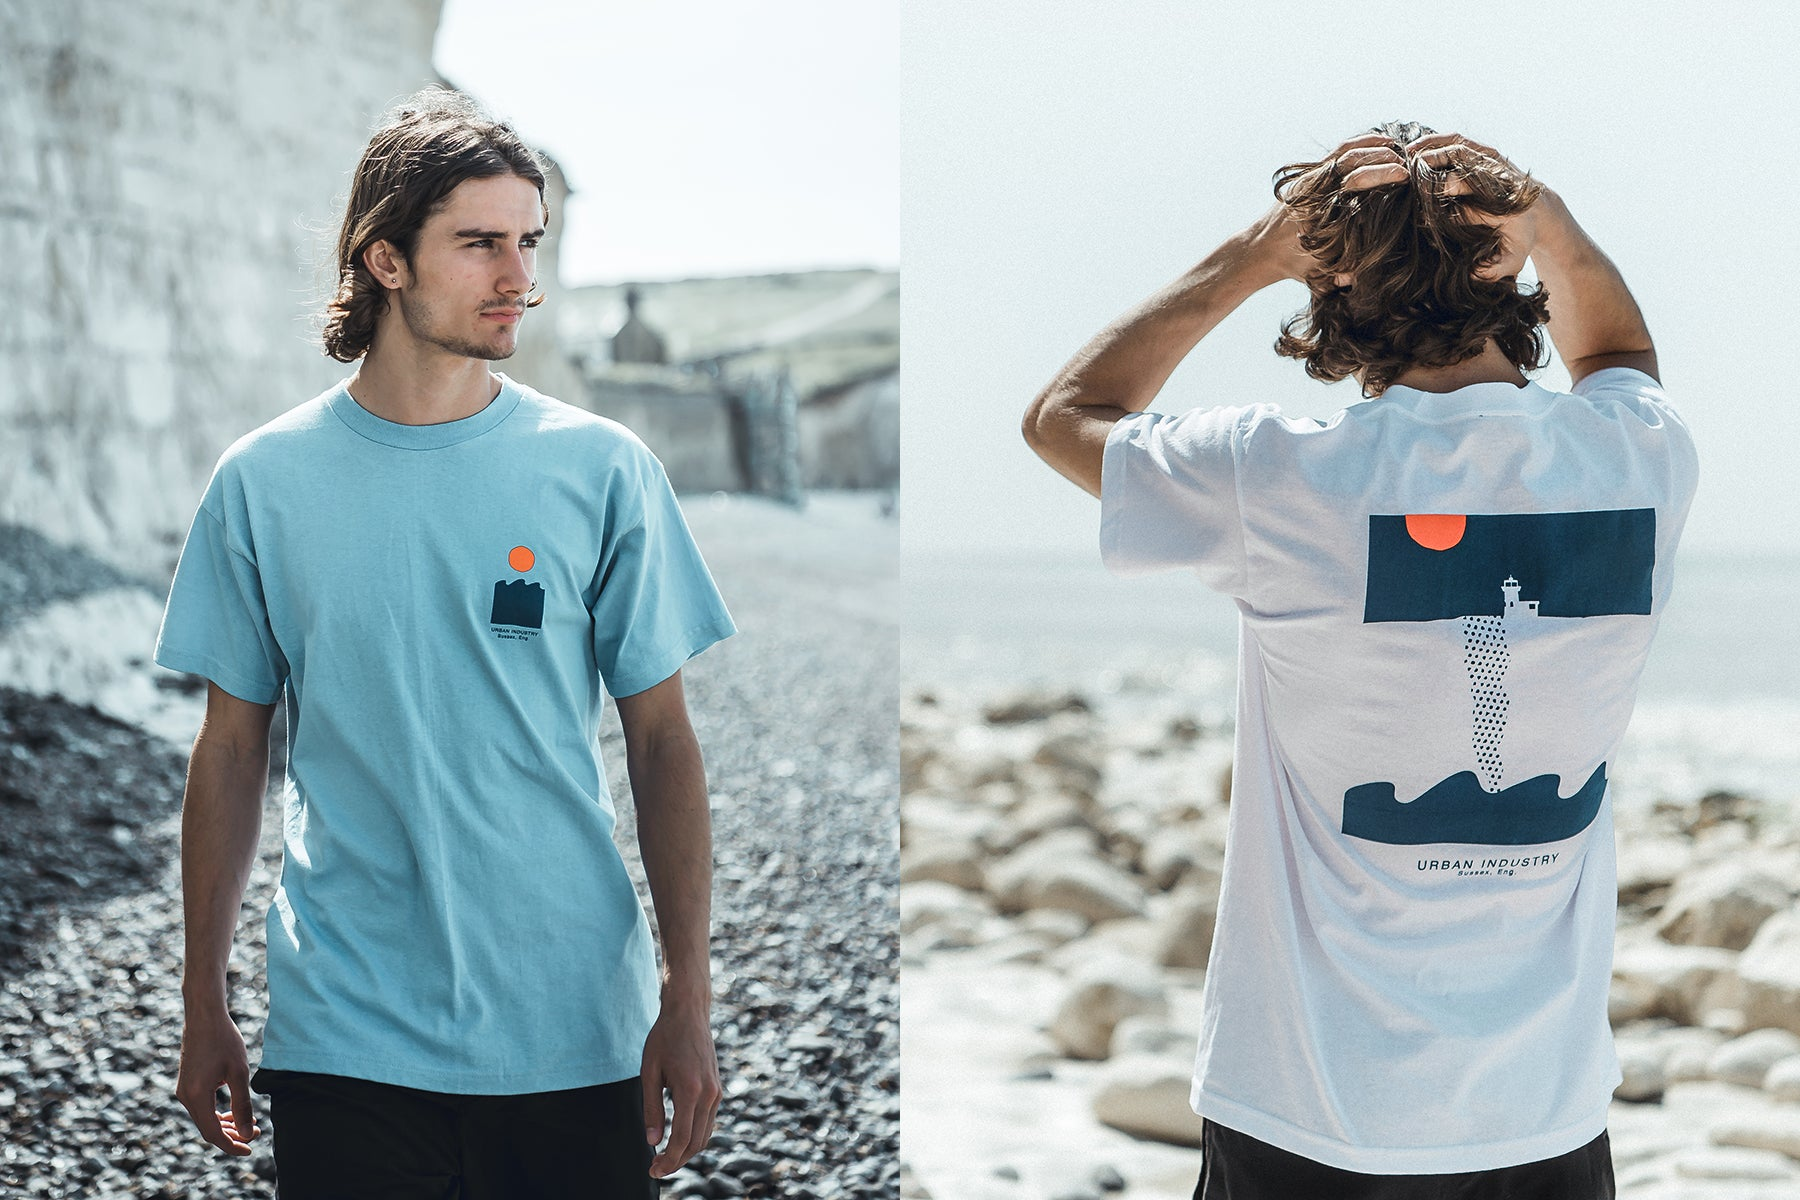 Urban Industry Summer 18 Capsule, Belle Tout T-shirt in Eastbourne